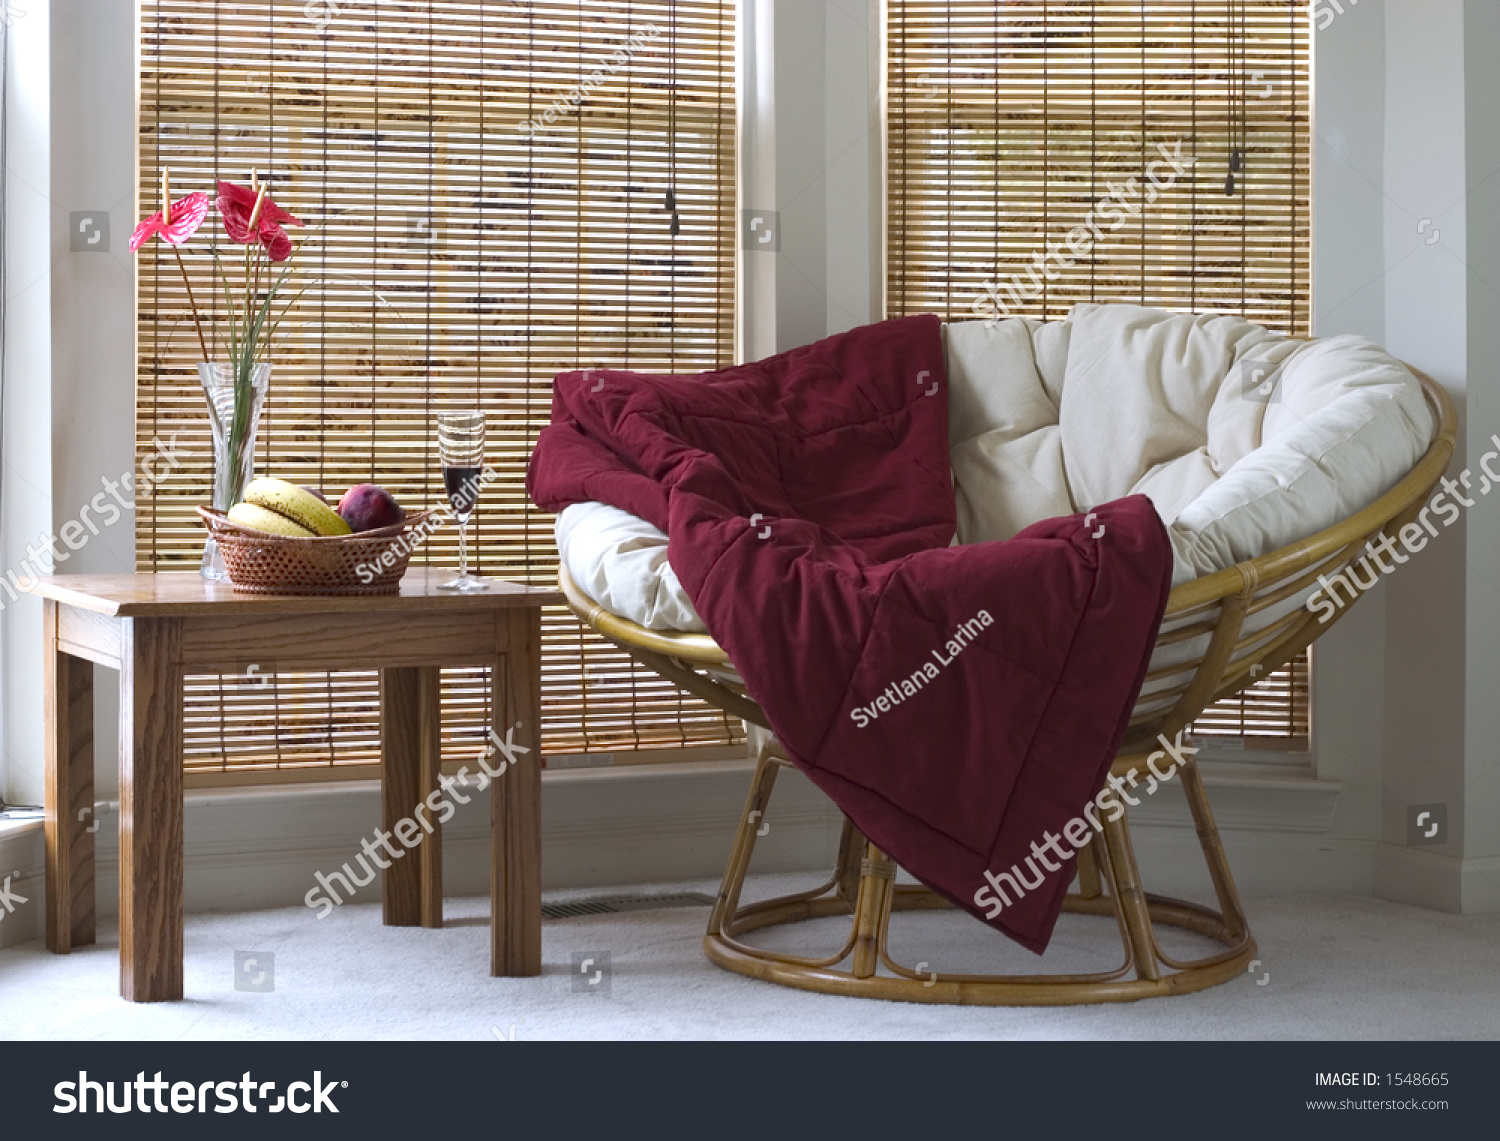 Papasan Chair In Living Room Papasan Chair Near Coffee Table With Wine And Fruits Stock Photo